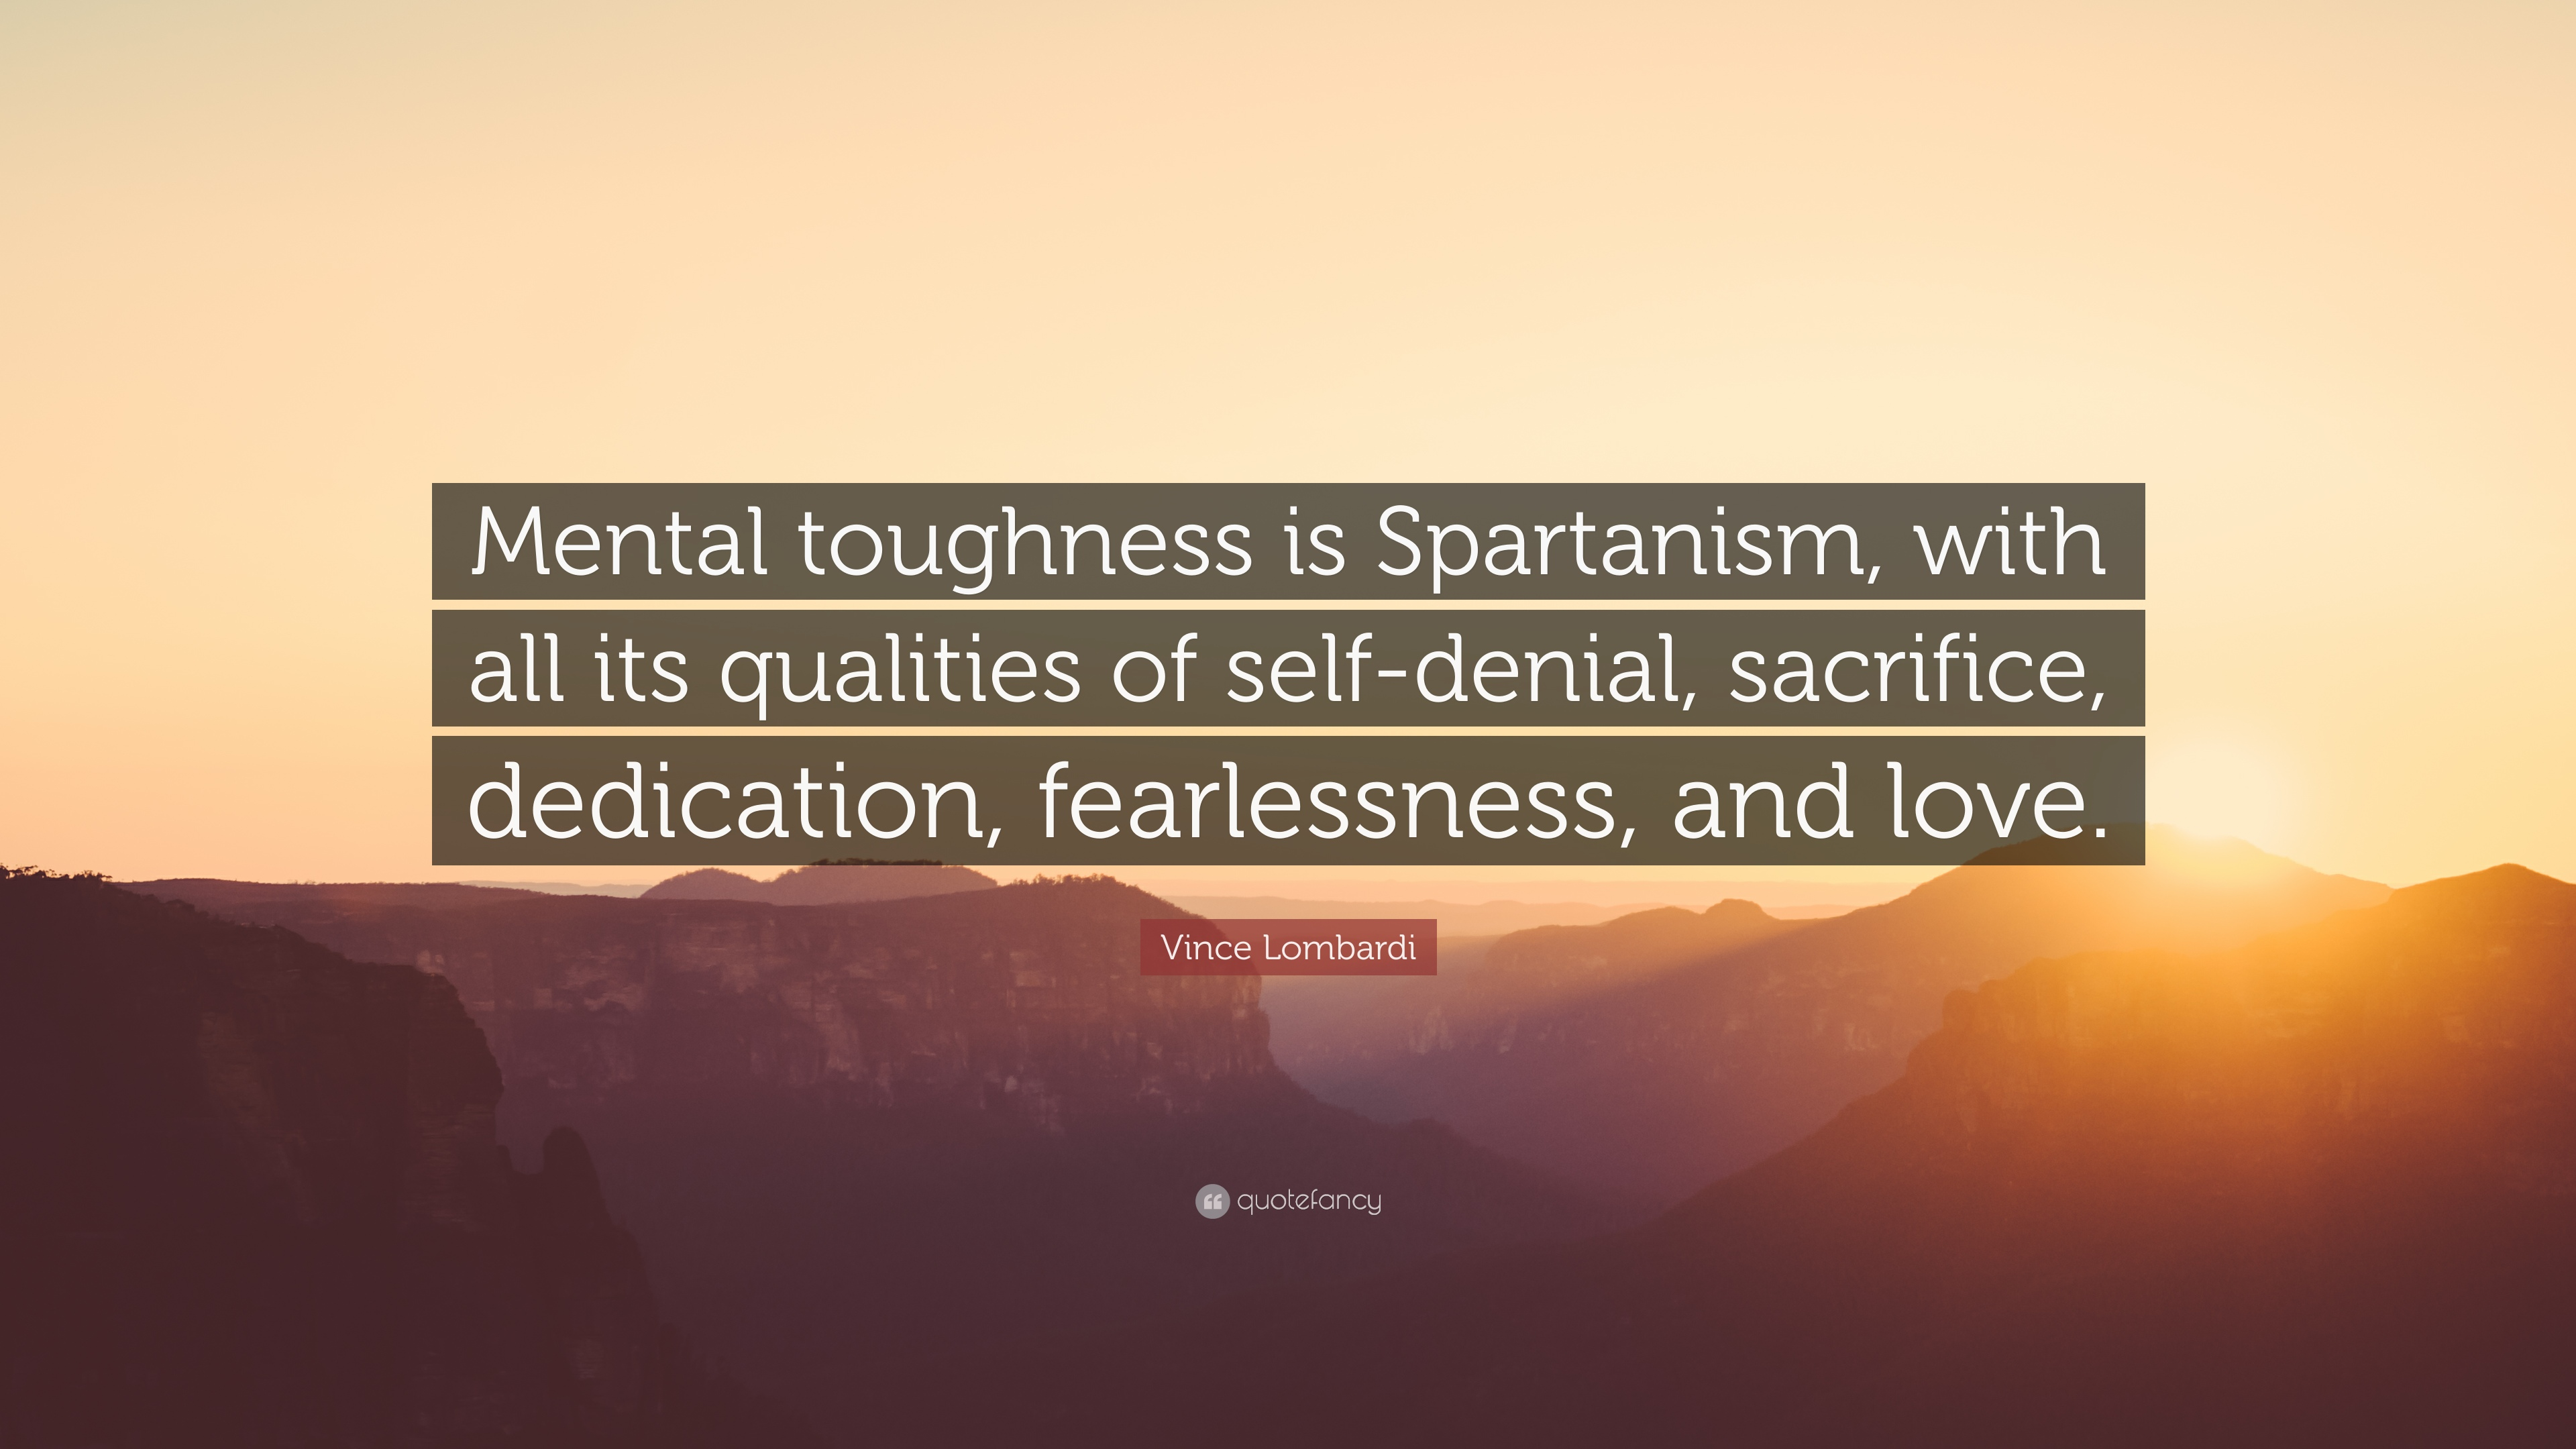 Sacrifice quotes 40 wallpapers quotefancy sacrifice quotes mental toughness is spartanism with all its qualities of self altavistaventures Images